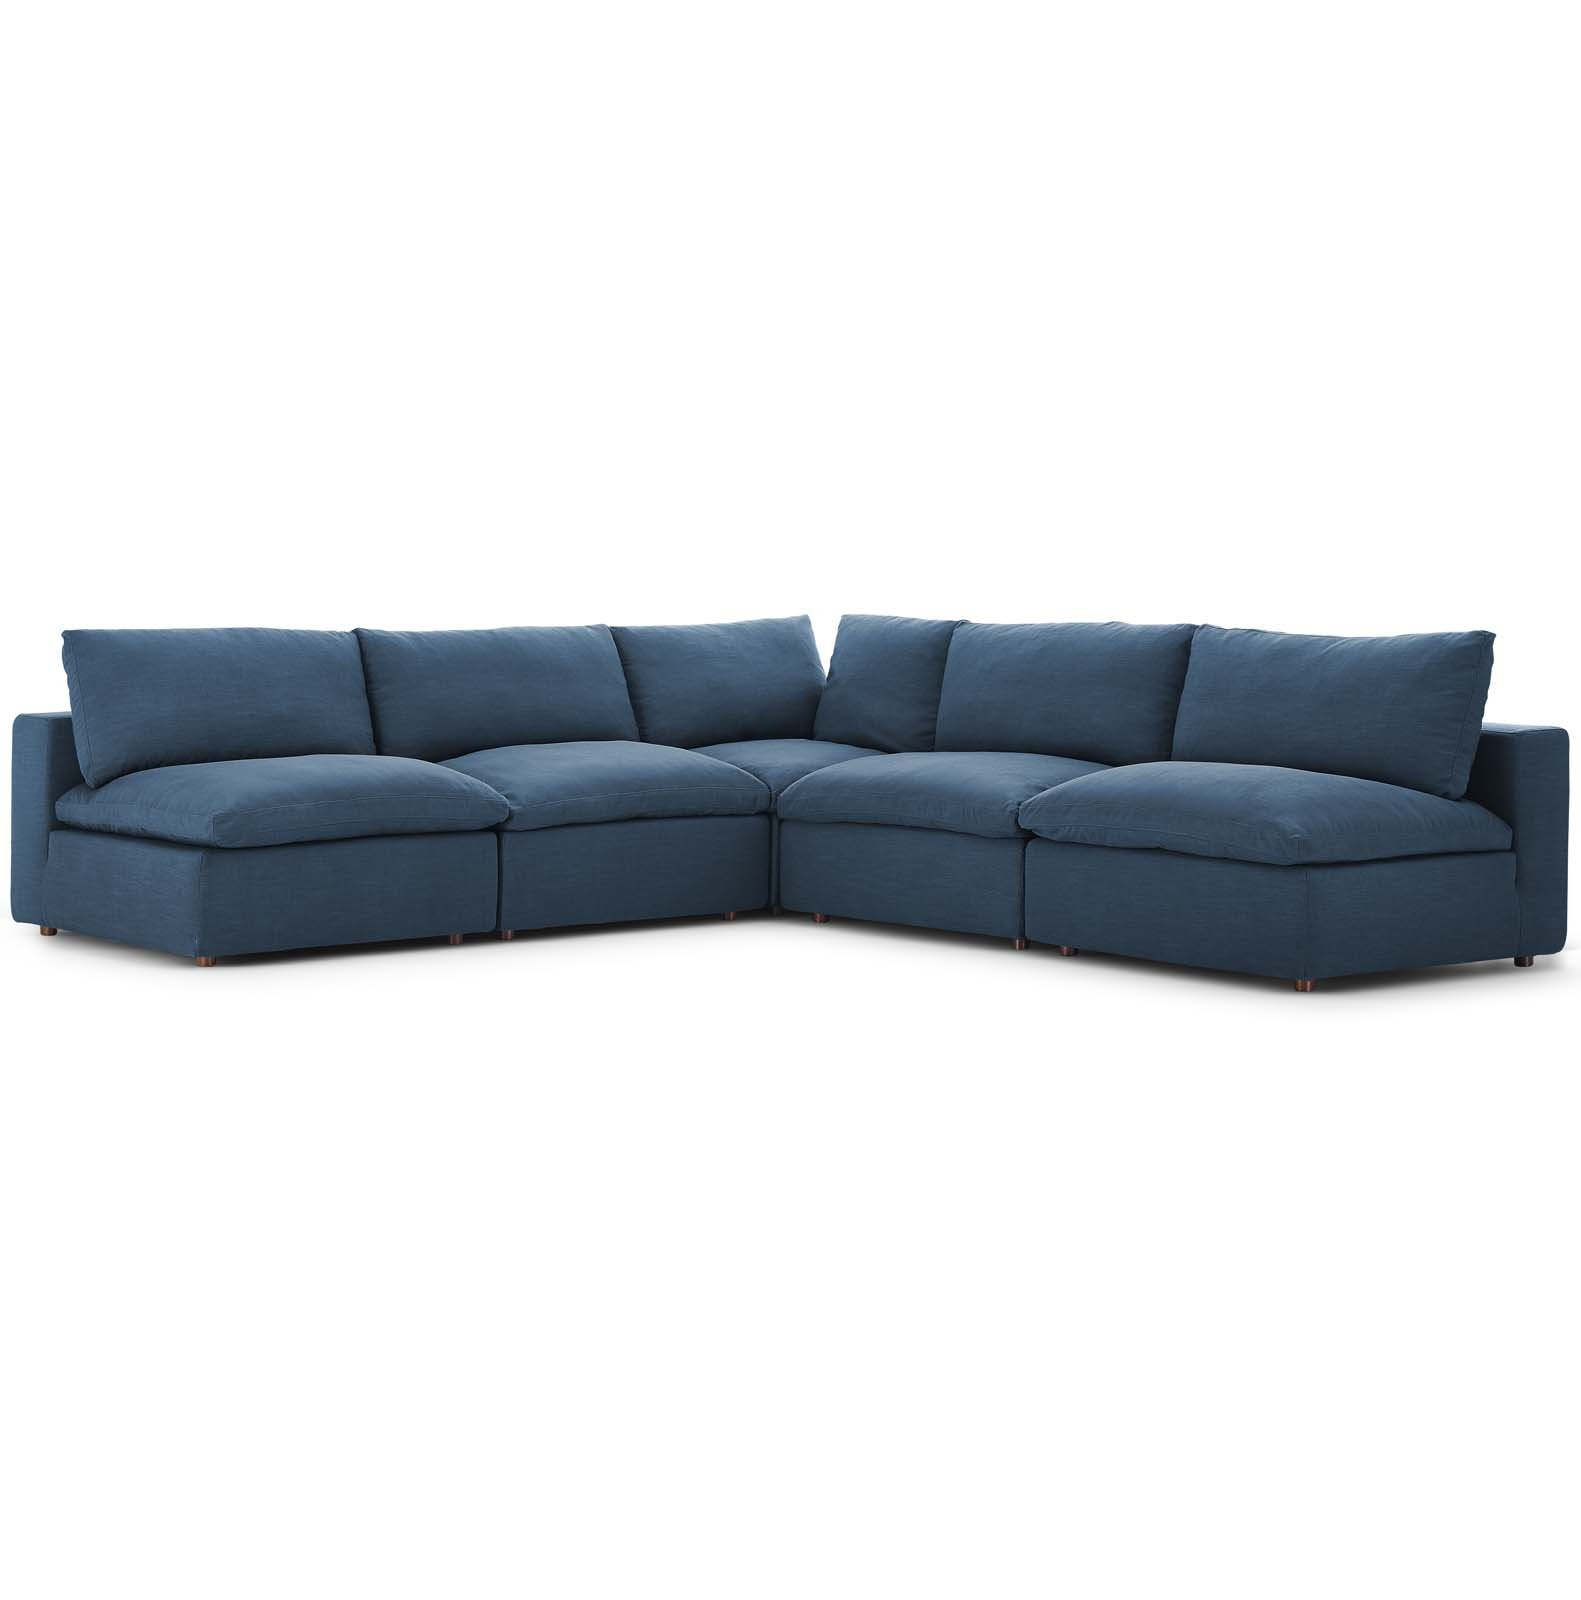 Commix Down Filled Overstuffed 5 Piece Sectional Sofa Set Sectional Sofa Sofa Set Corner Sectional Sofa